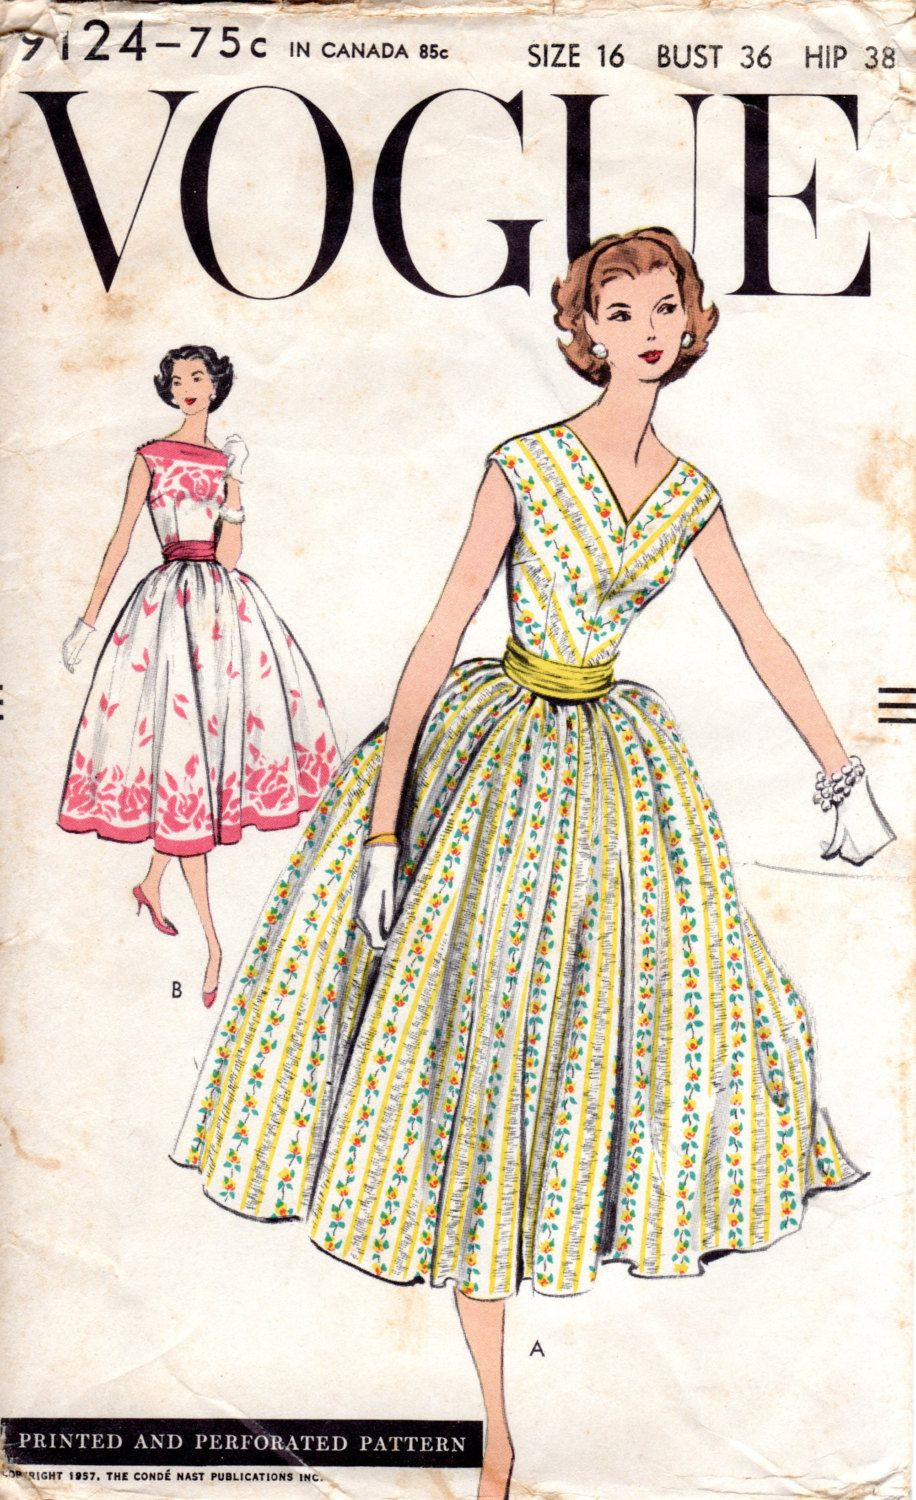 1950s Fit & Flare Dress Pattern - Vintage Vogue 9124 - Bust 36 FF